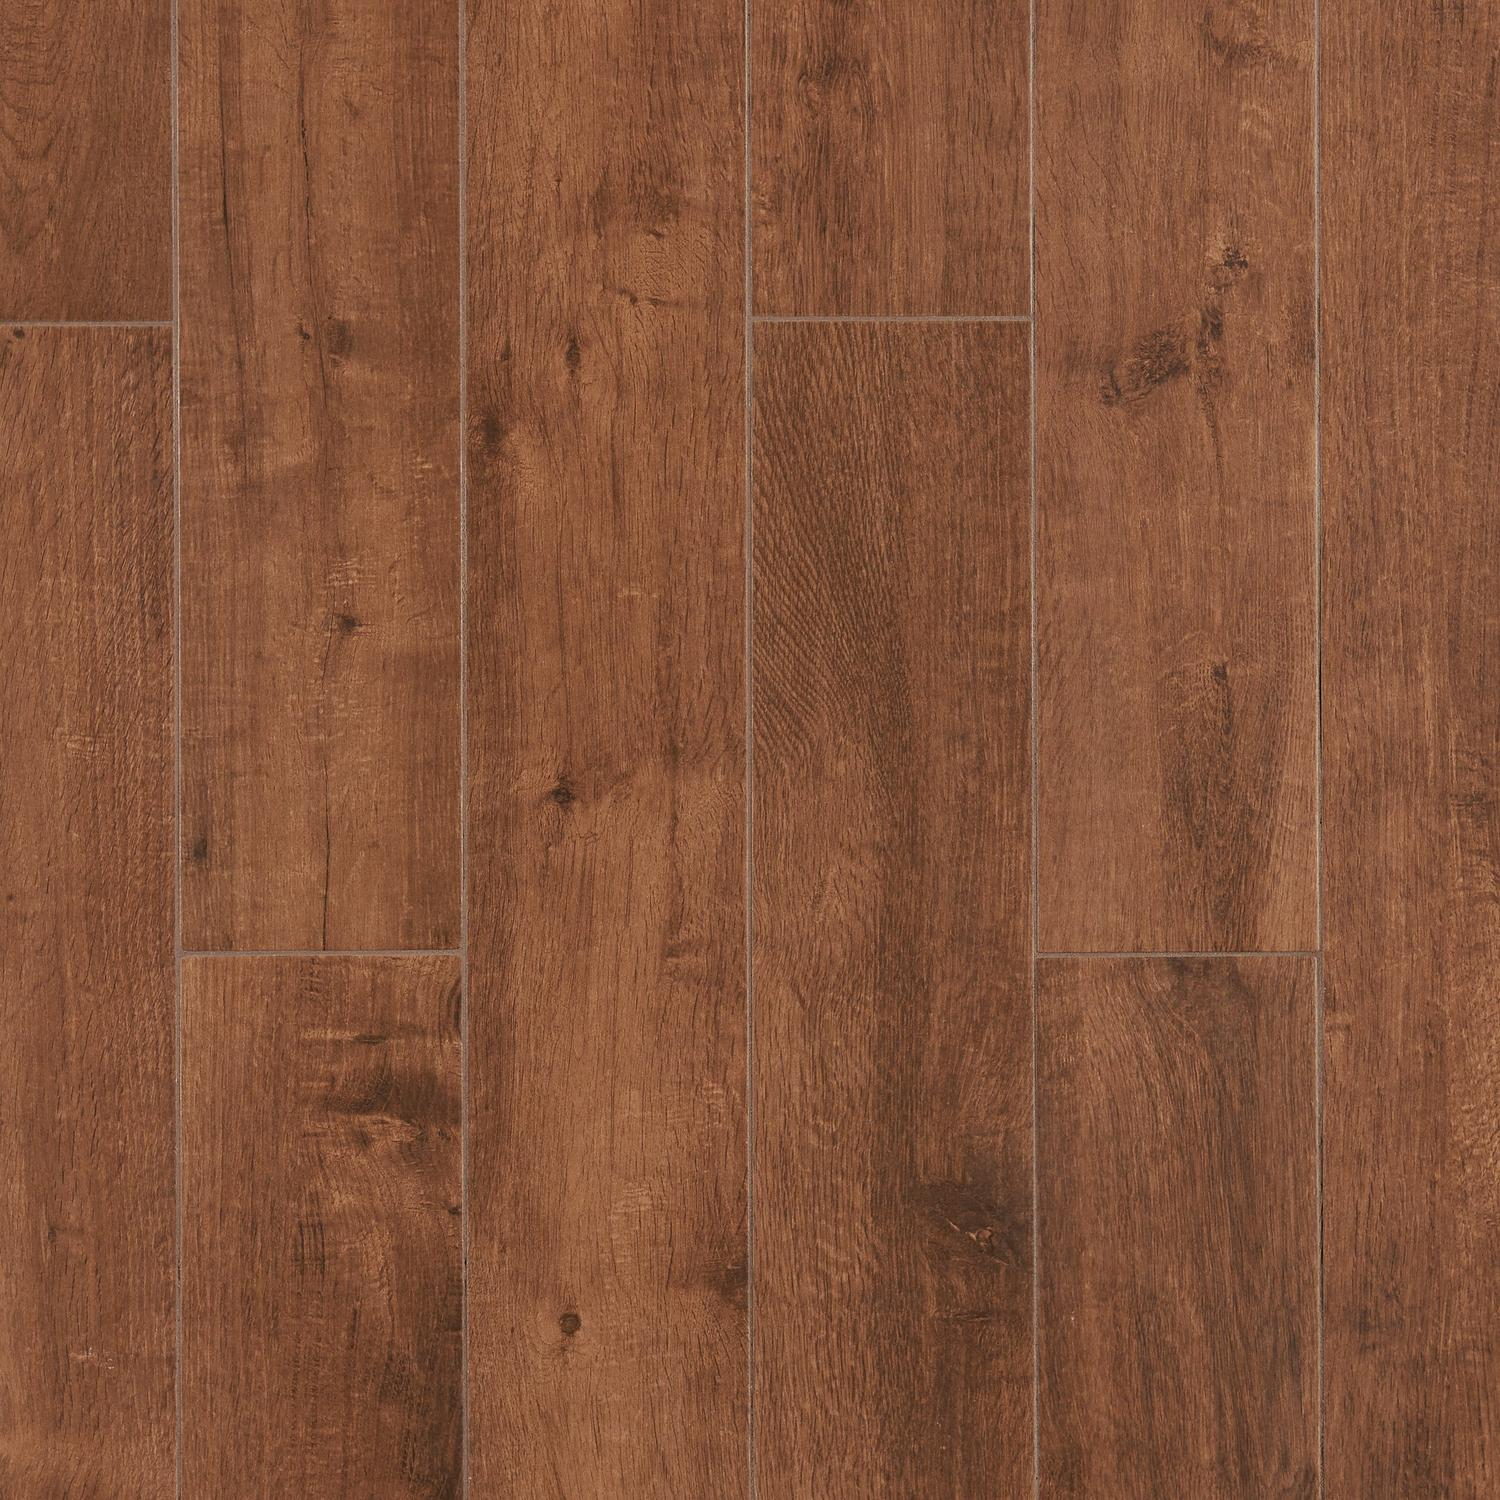 Porcelain Tile Wood Plank: Groutless Wood Look Porcelain Tile